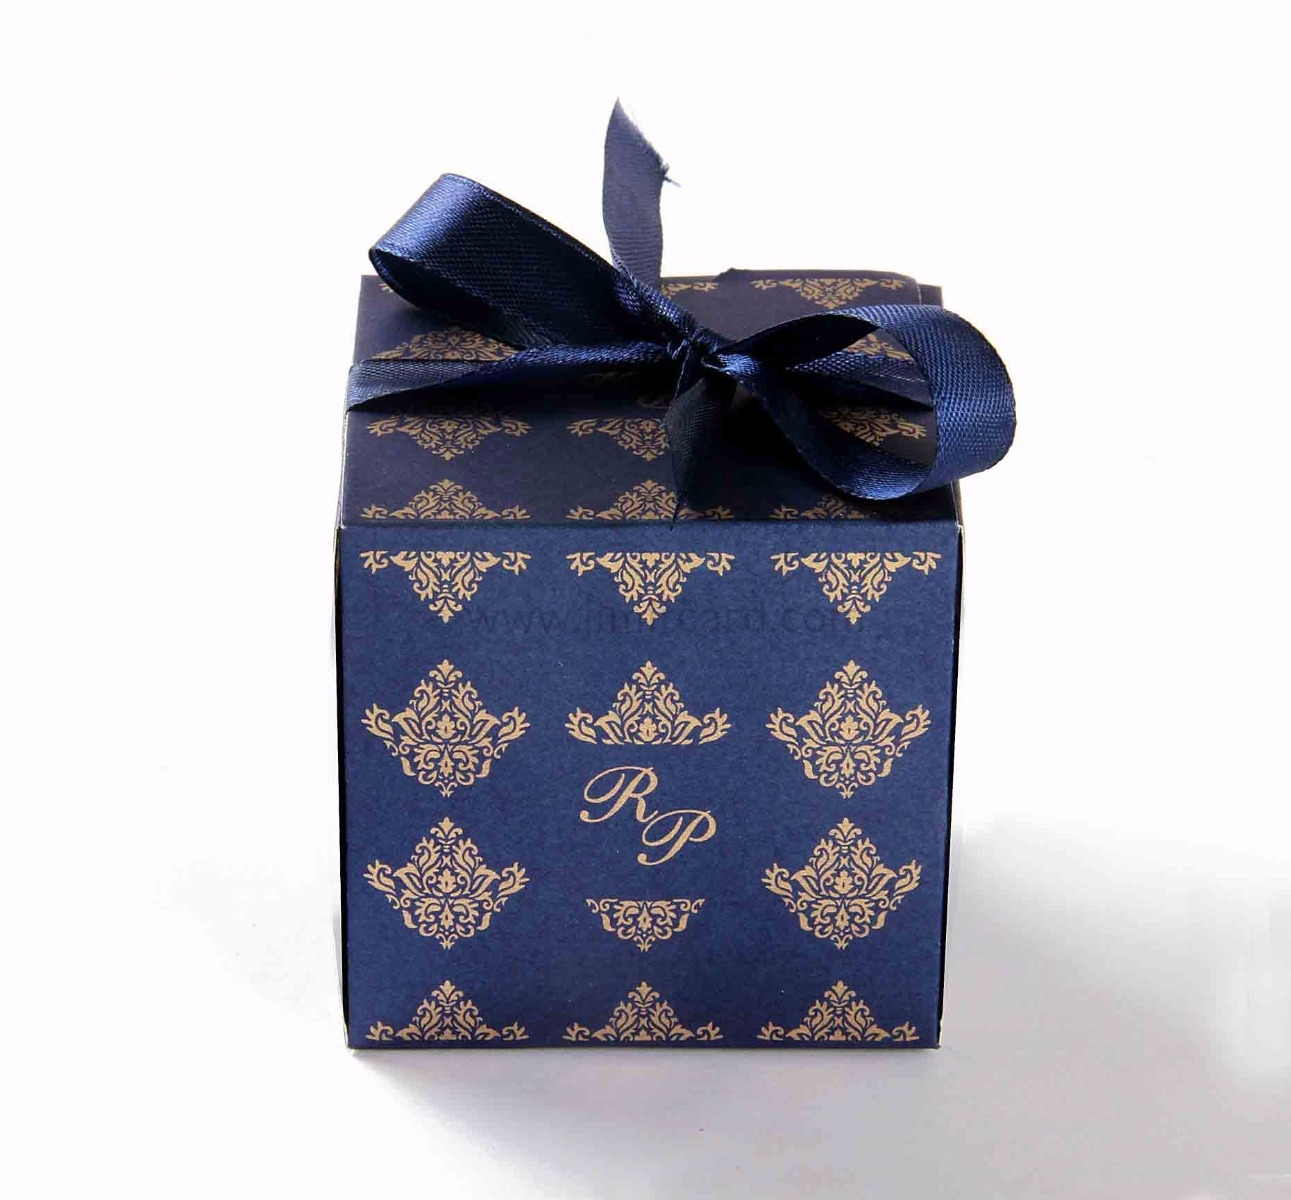 Bow Top Cube Favor Box in Royal Blue Color